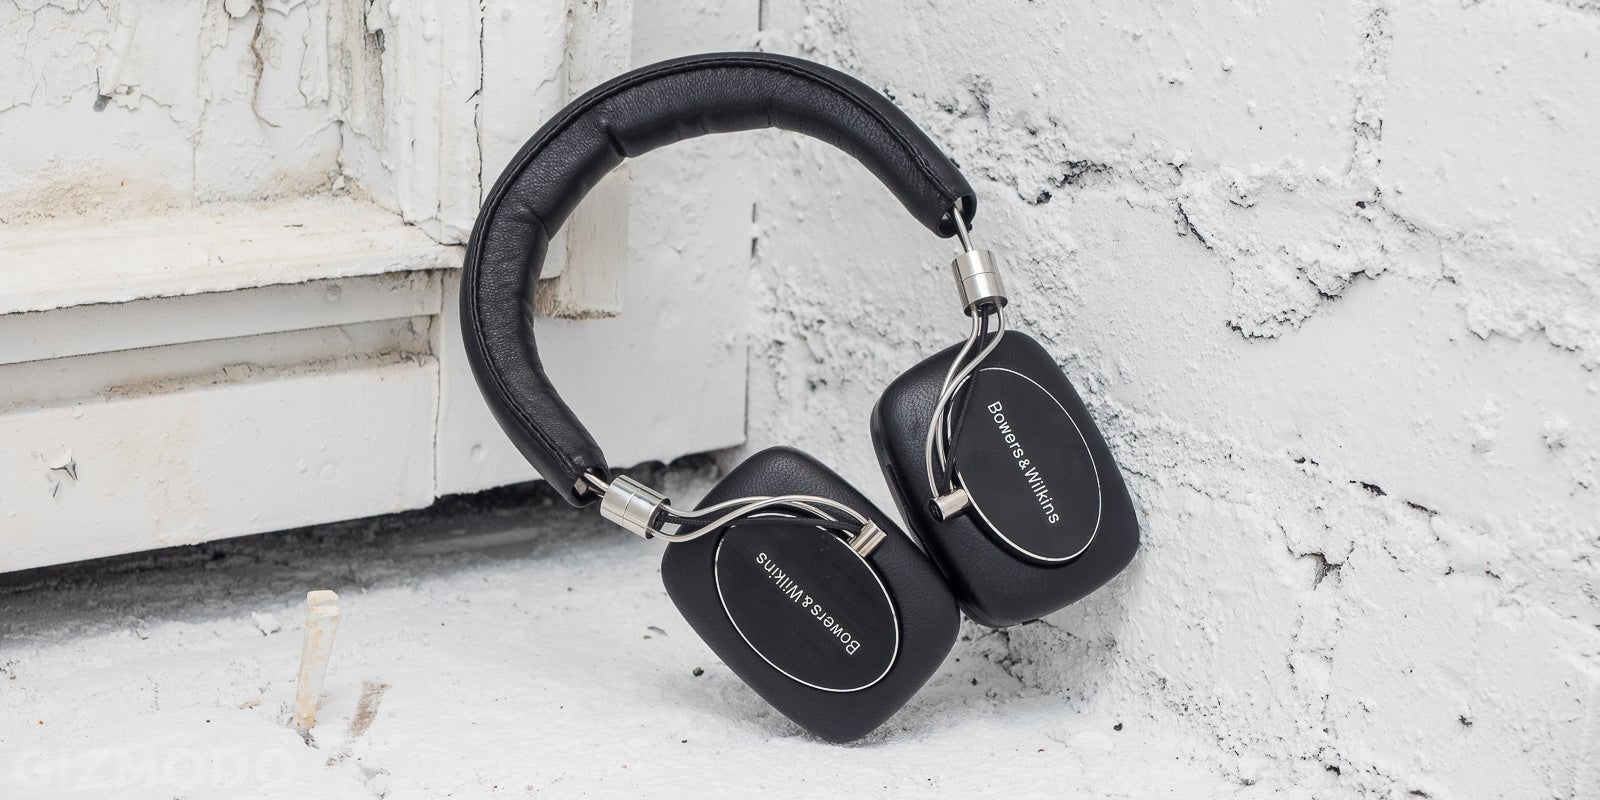 Bowers & Wilkins' First Wireless Headphones Are Brilliant — Except for One Thing